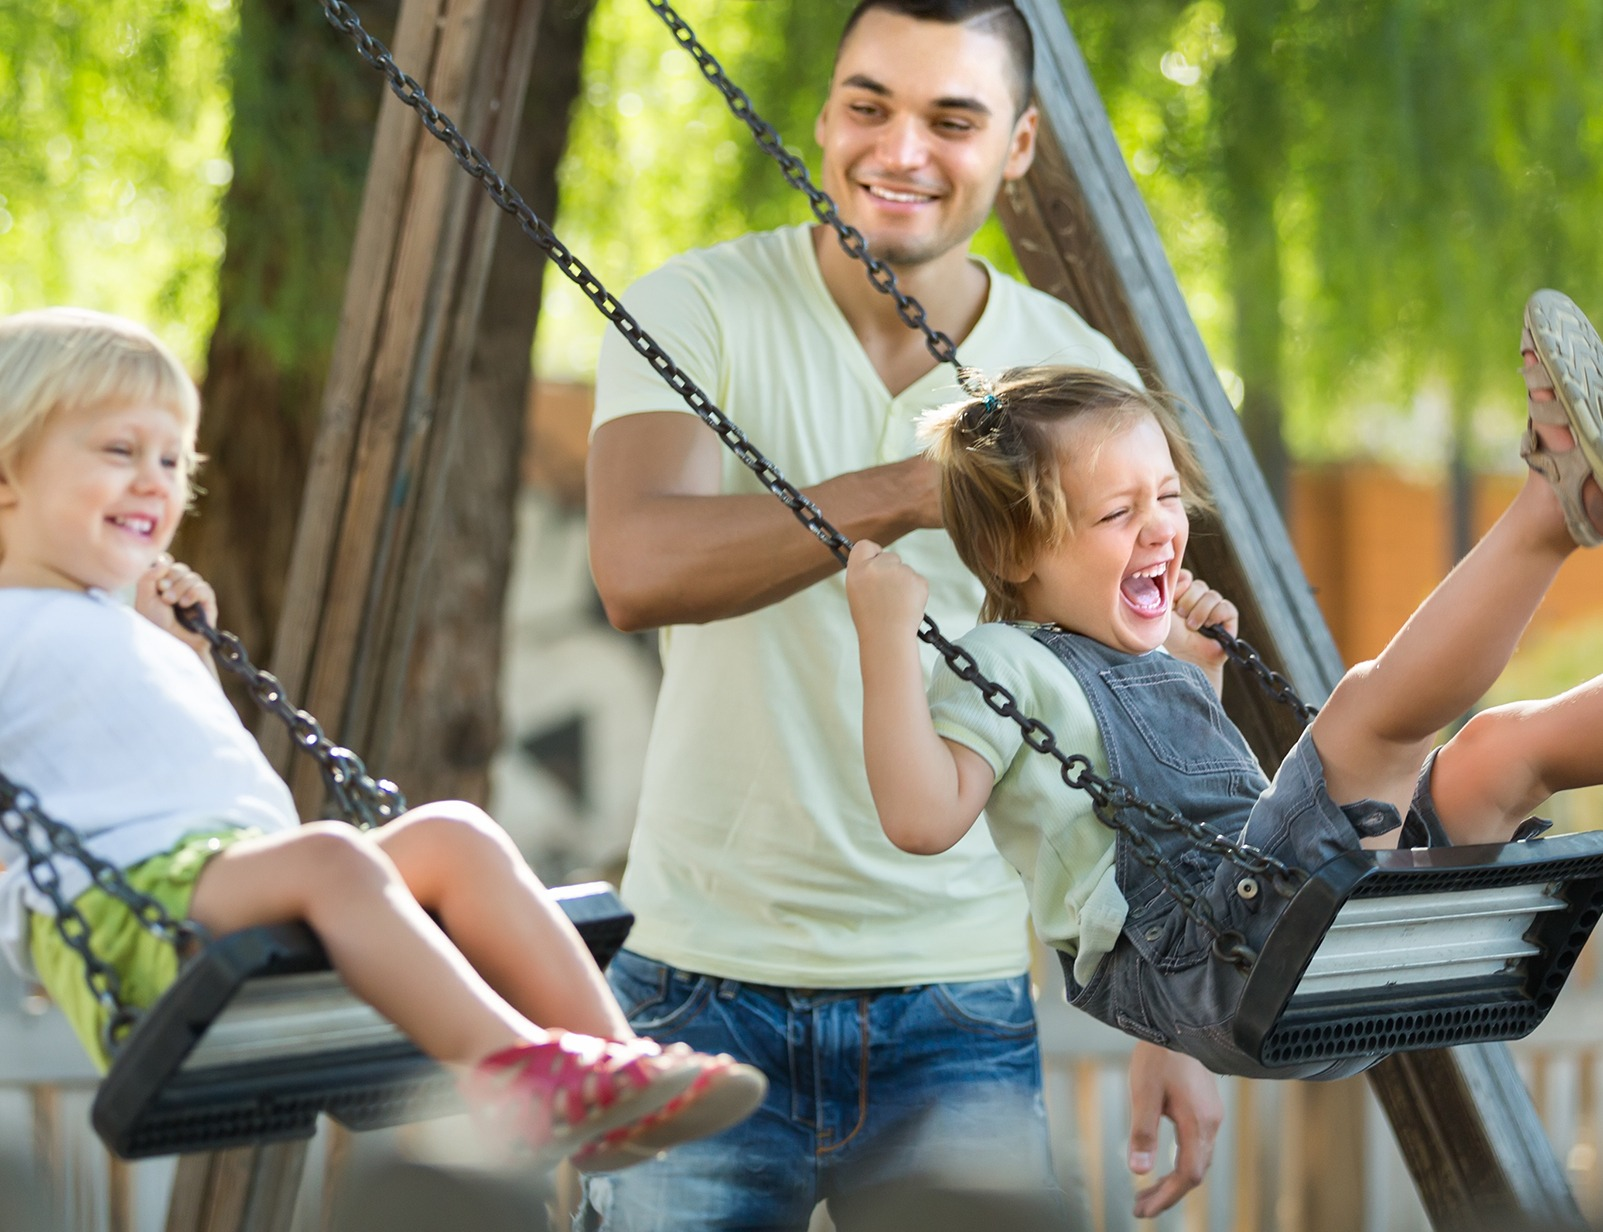 fun_on_swings_in-home_child_care_zest_care